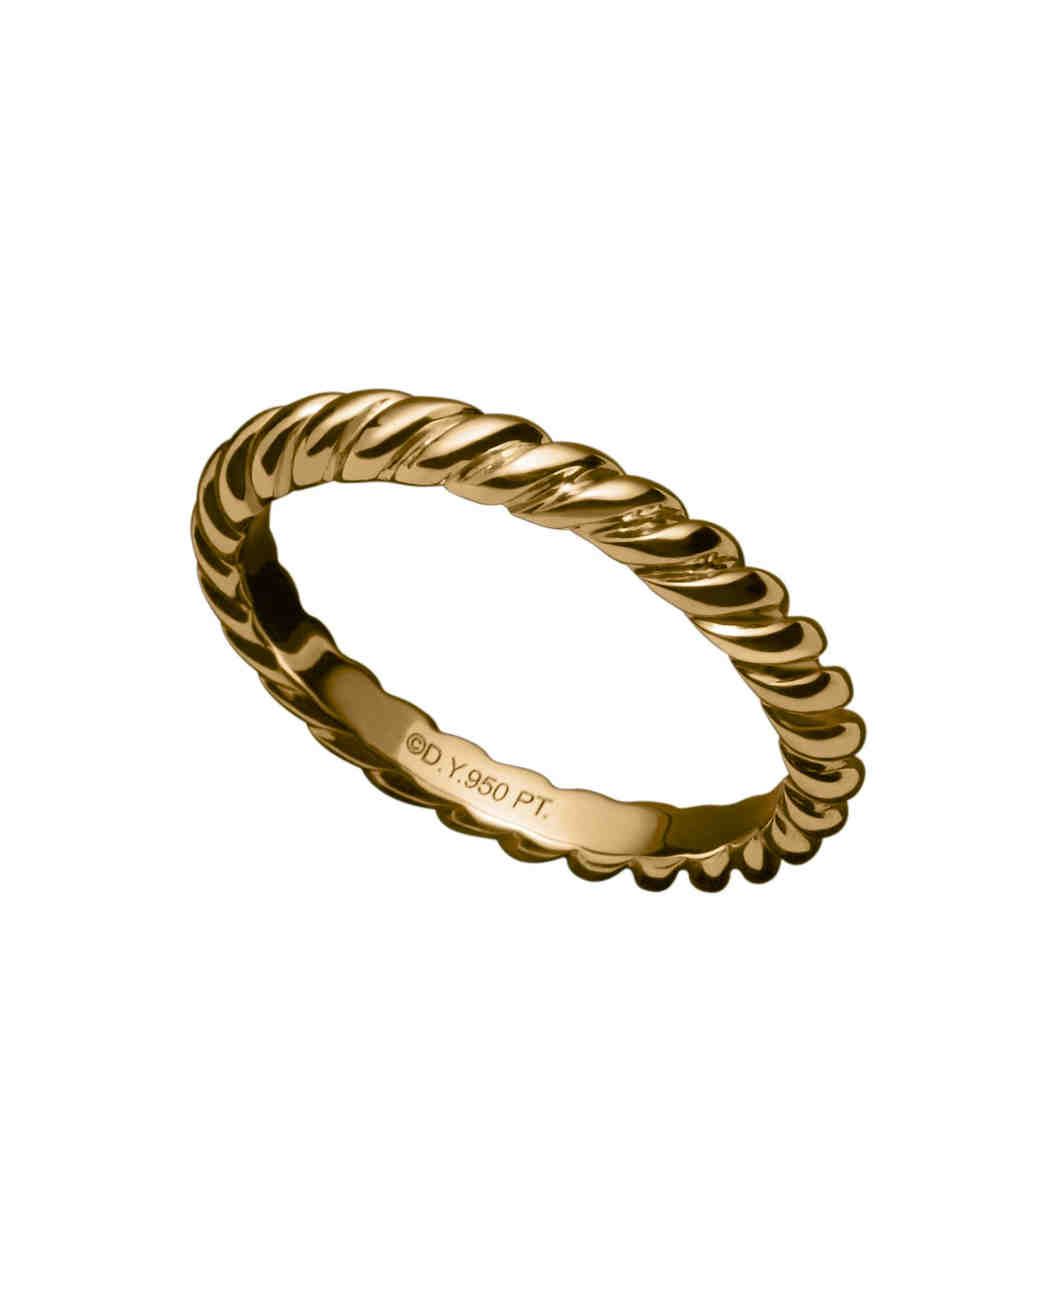 gold-wedding-bands-yurman-ring-0415.jpg